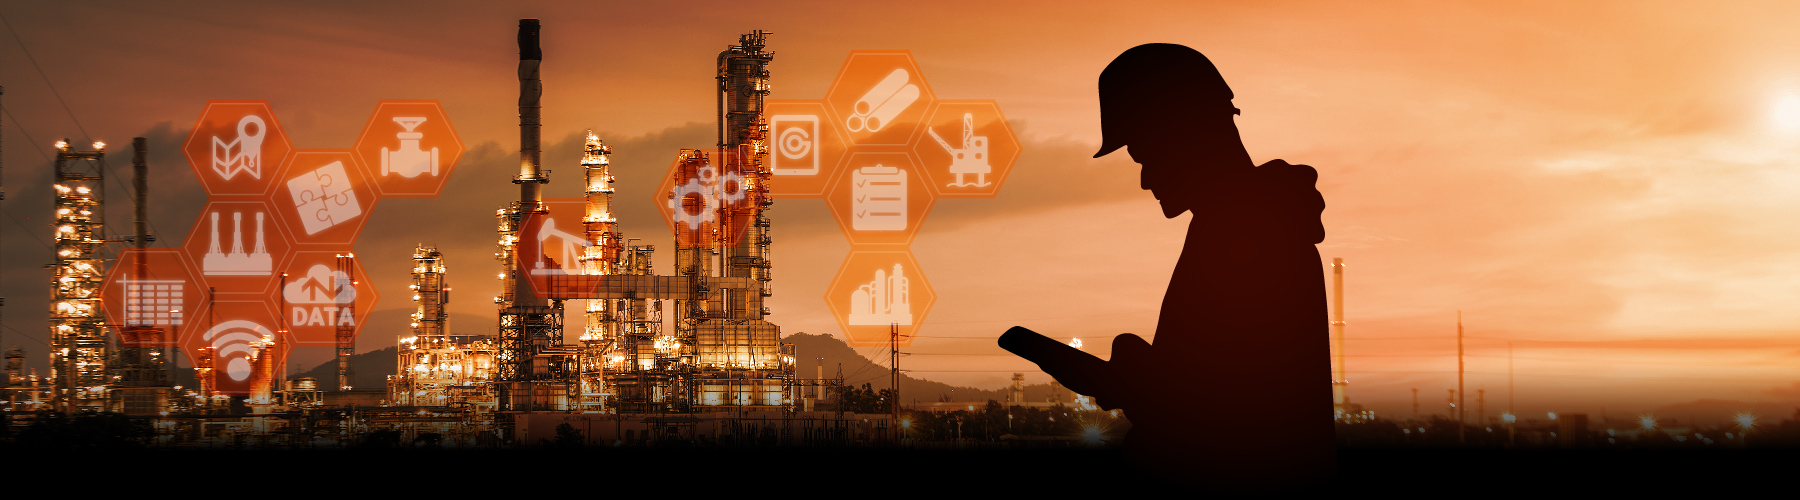 VisionsGo: Mobile Technology for Asset Data Collection